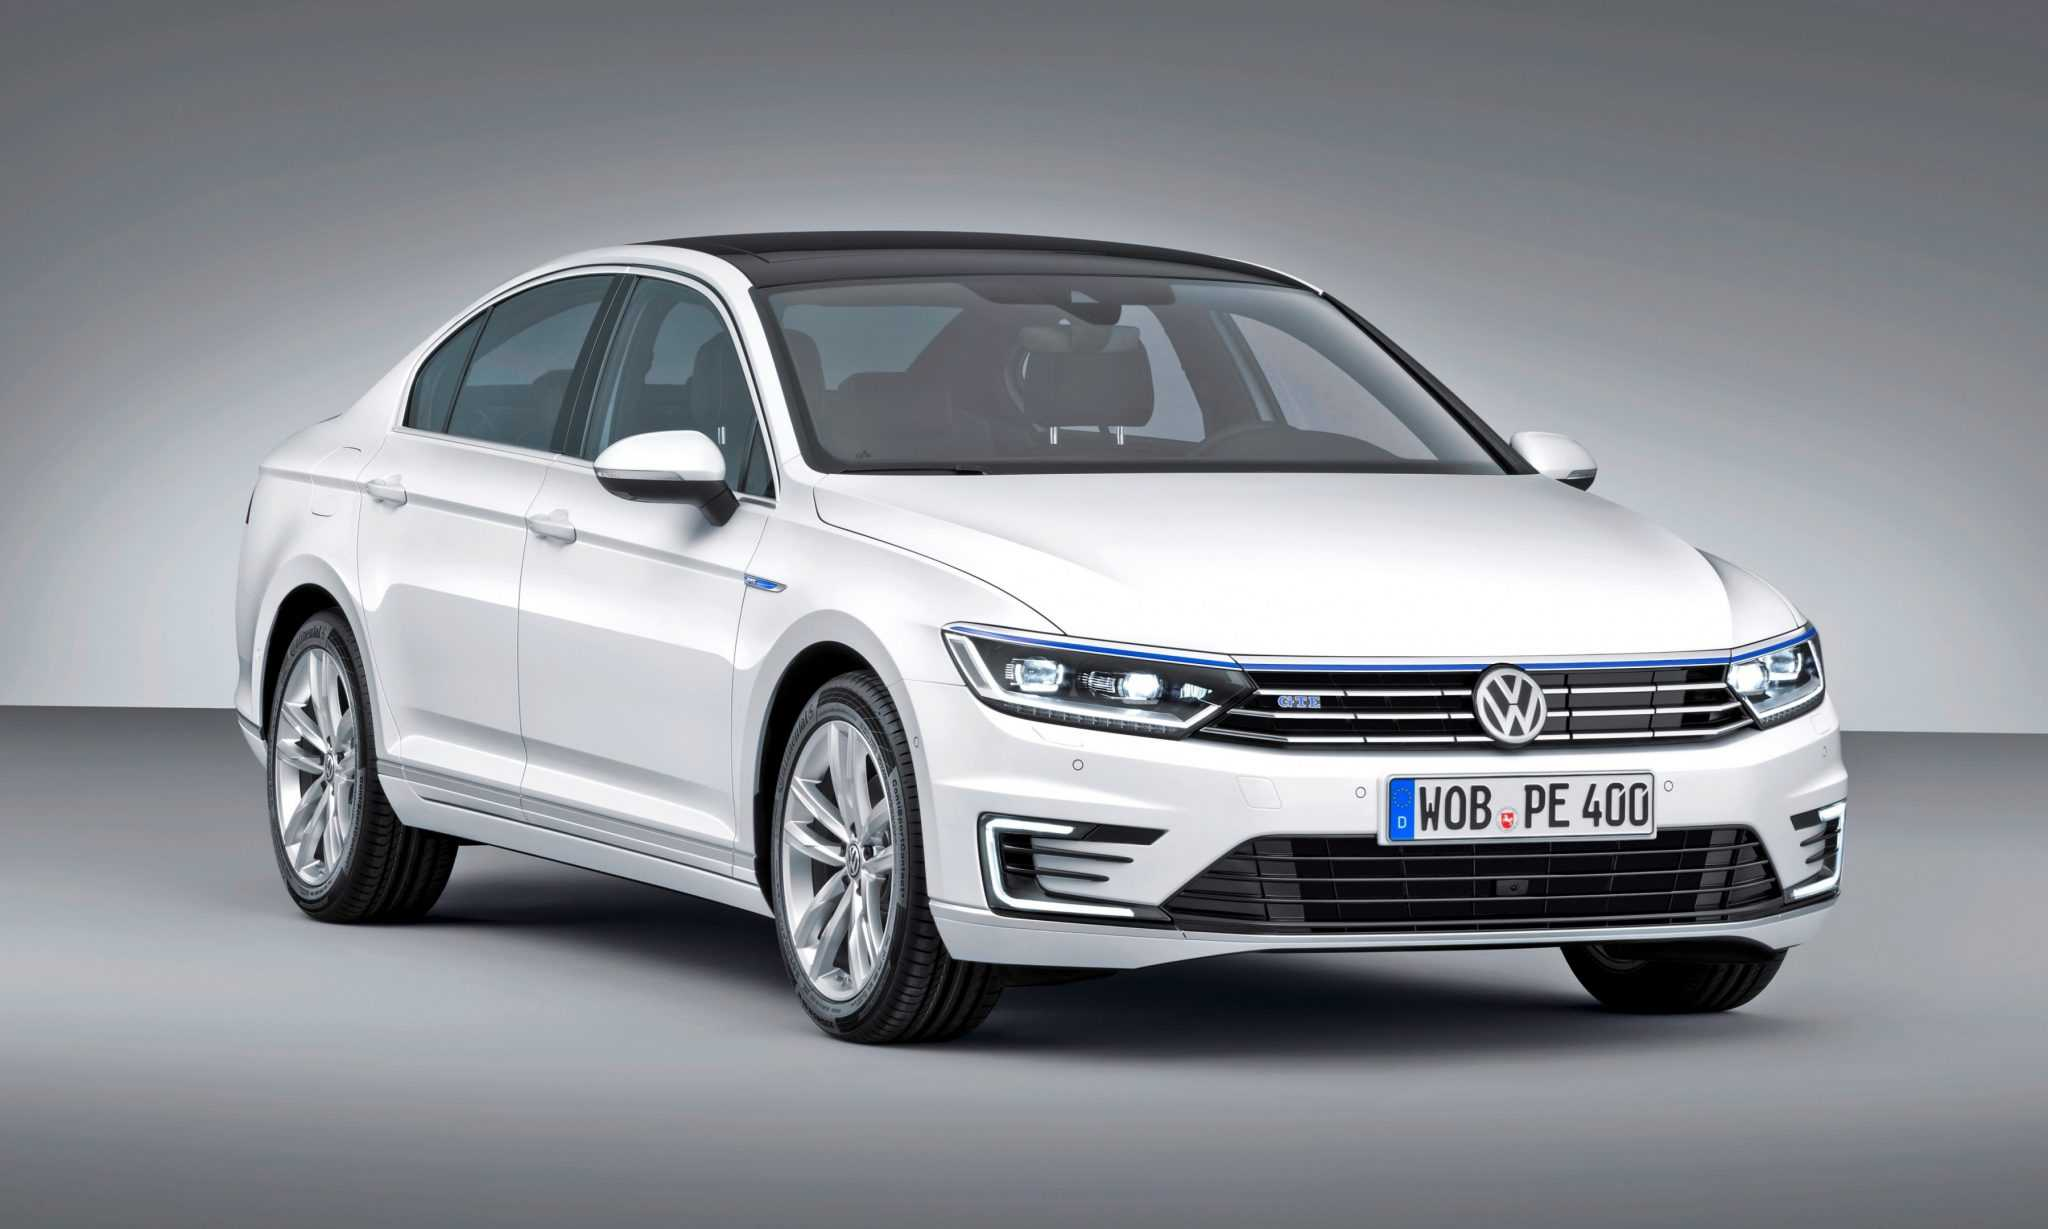 2016 Volkswagen Passat Gets a Refreshed Design with Notable Performance Upgrades